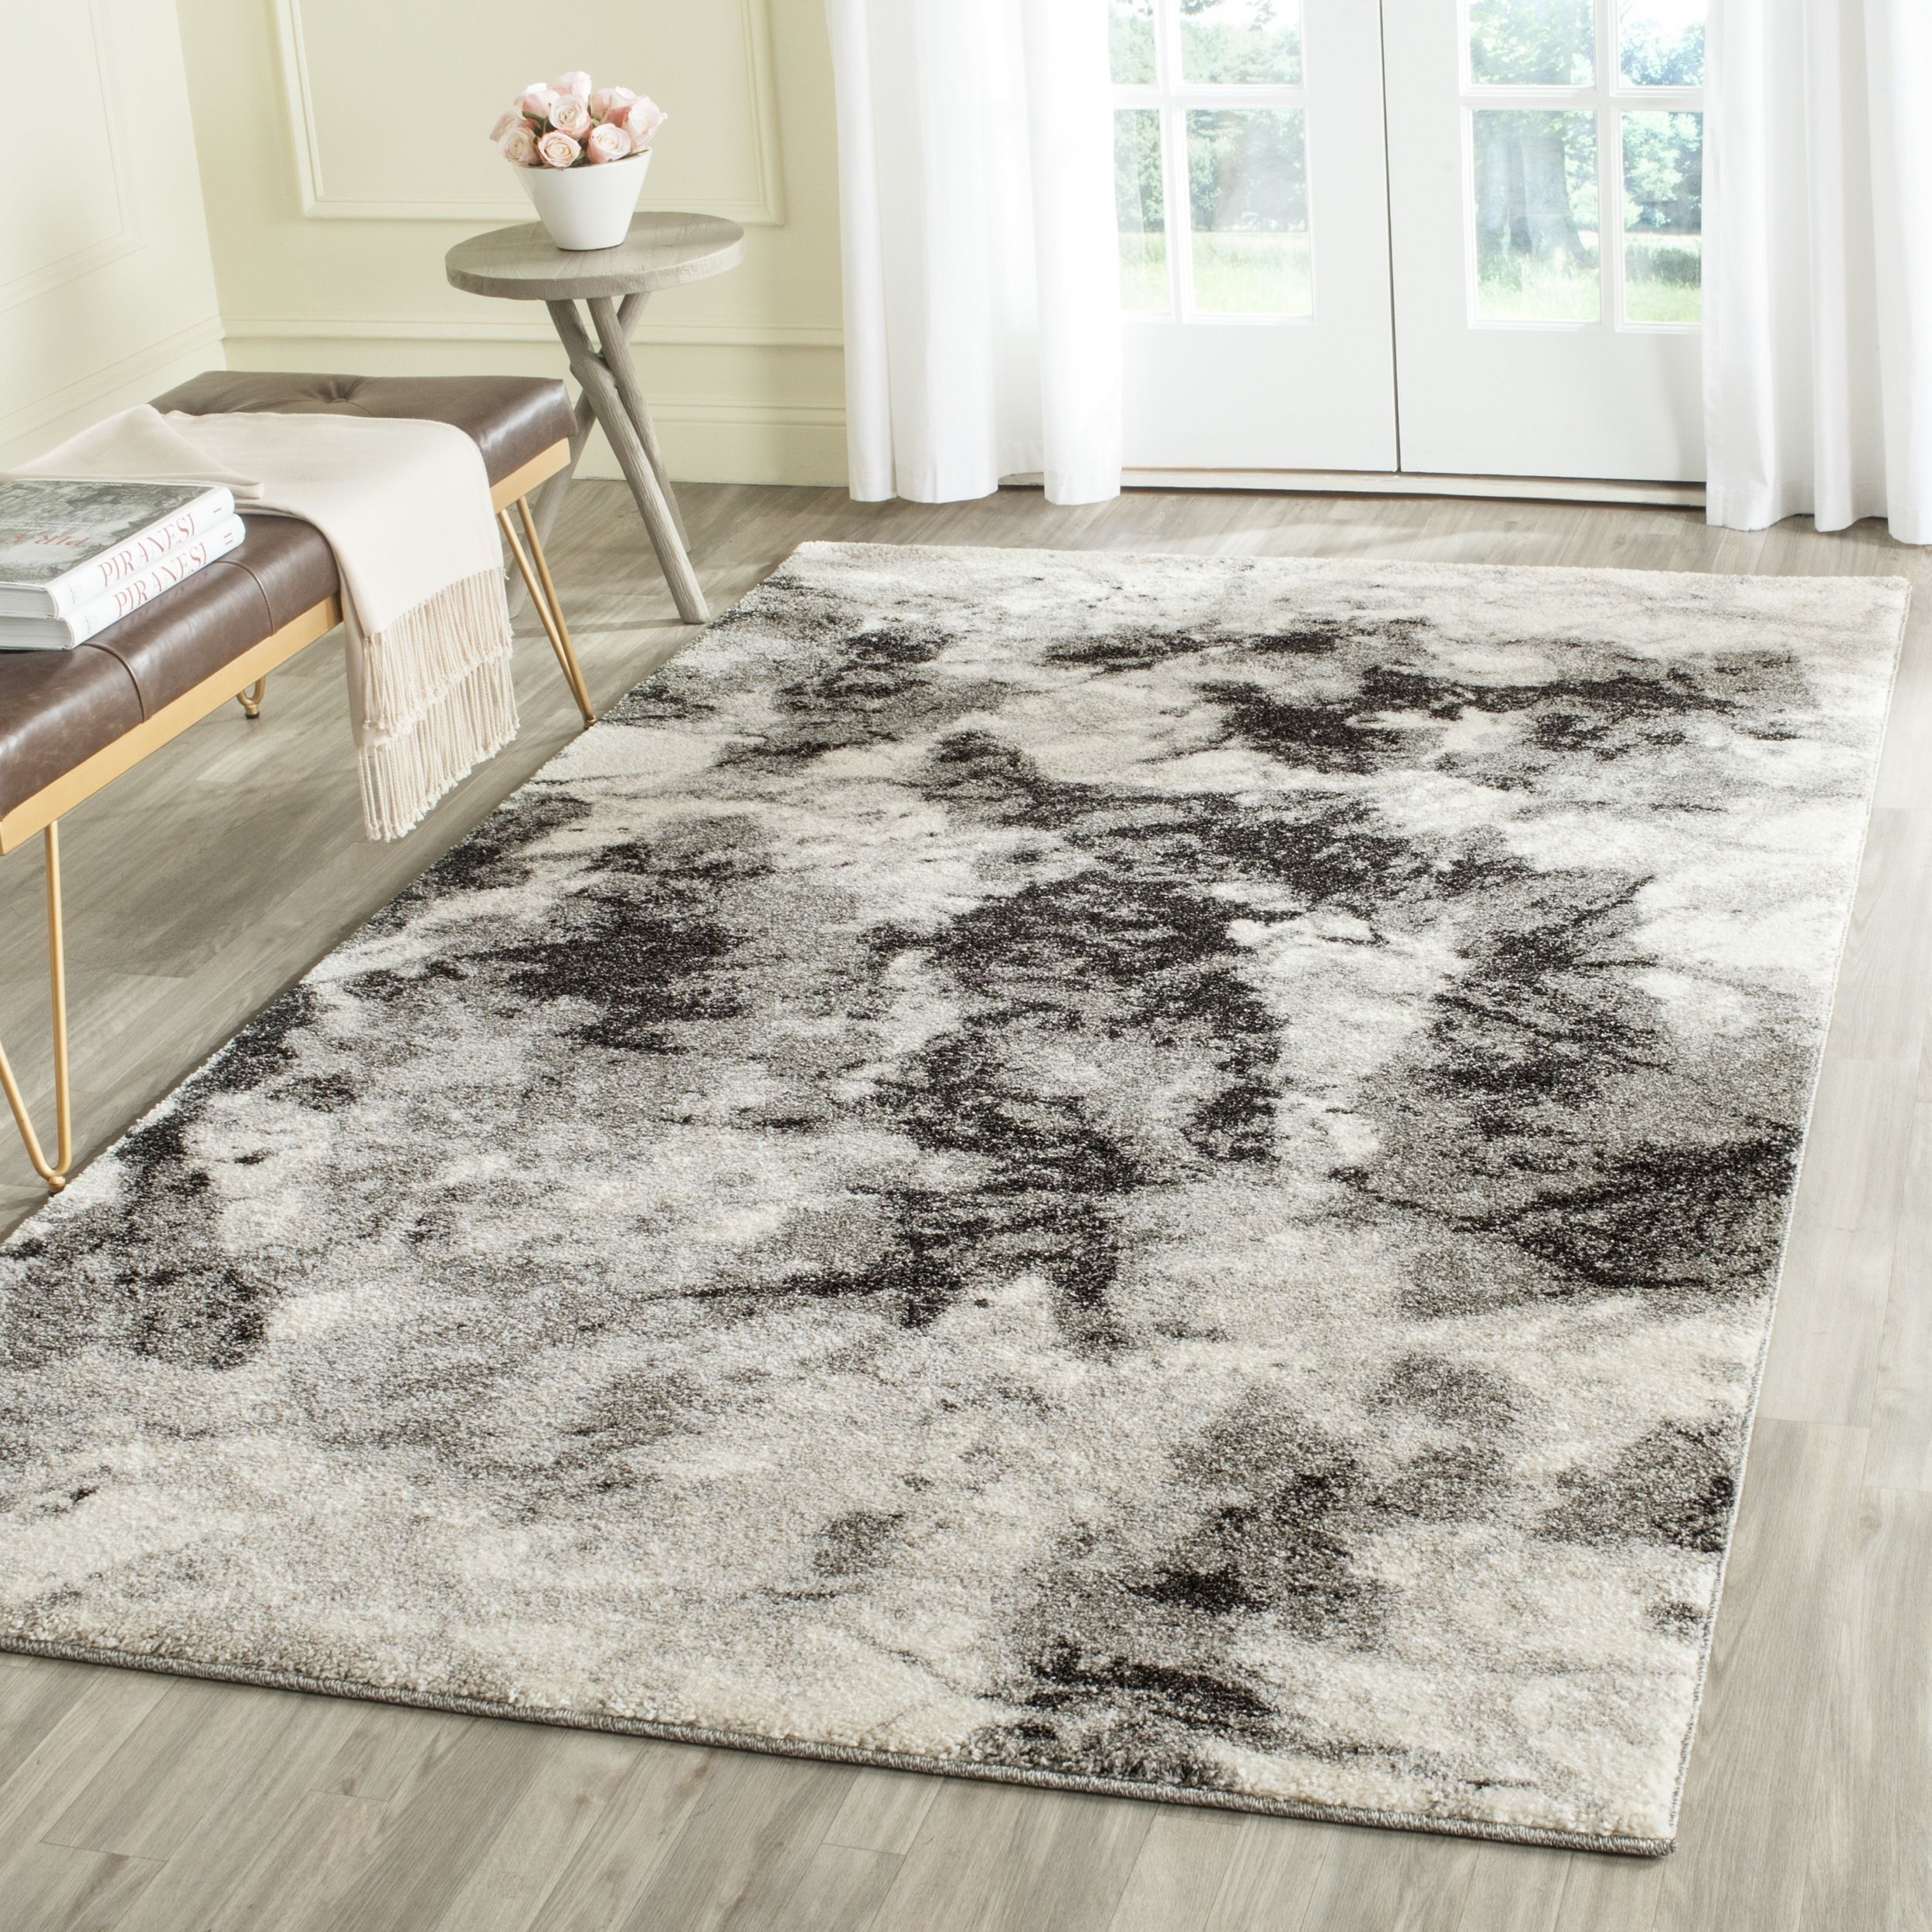 Overstock Com Online Shopping Bedding Furniture Electronics Jewelry Clothing More Abstract Rug Retro Rugs Area Rugs 11 x 13 area rugs